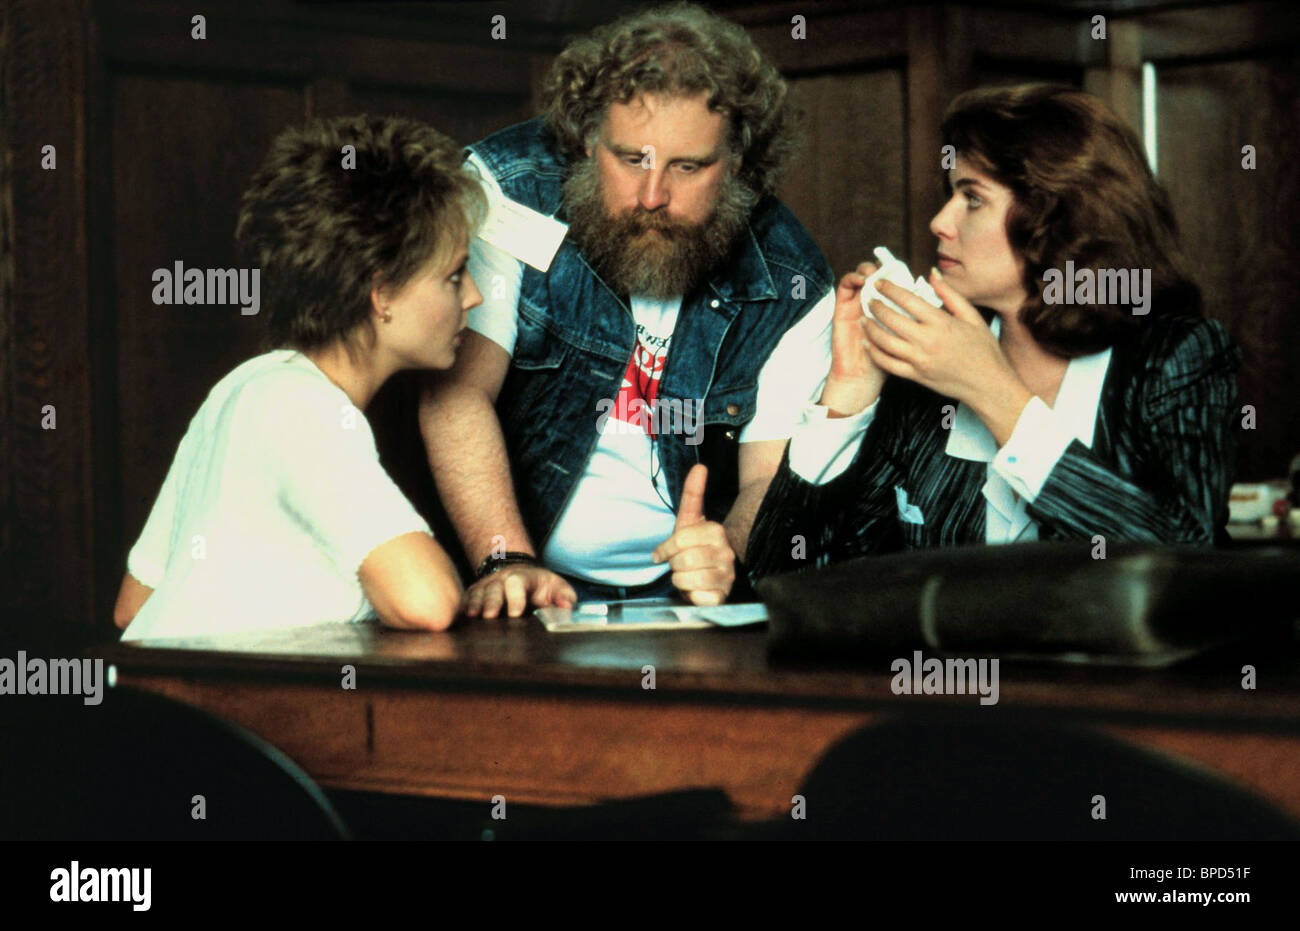 kelly mcgillis jodie foster the accused stock photo jodie foster jonathan kaplan kelly mcgillis the accused 1988 stock photo